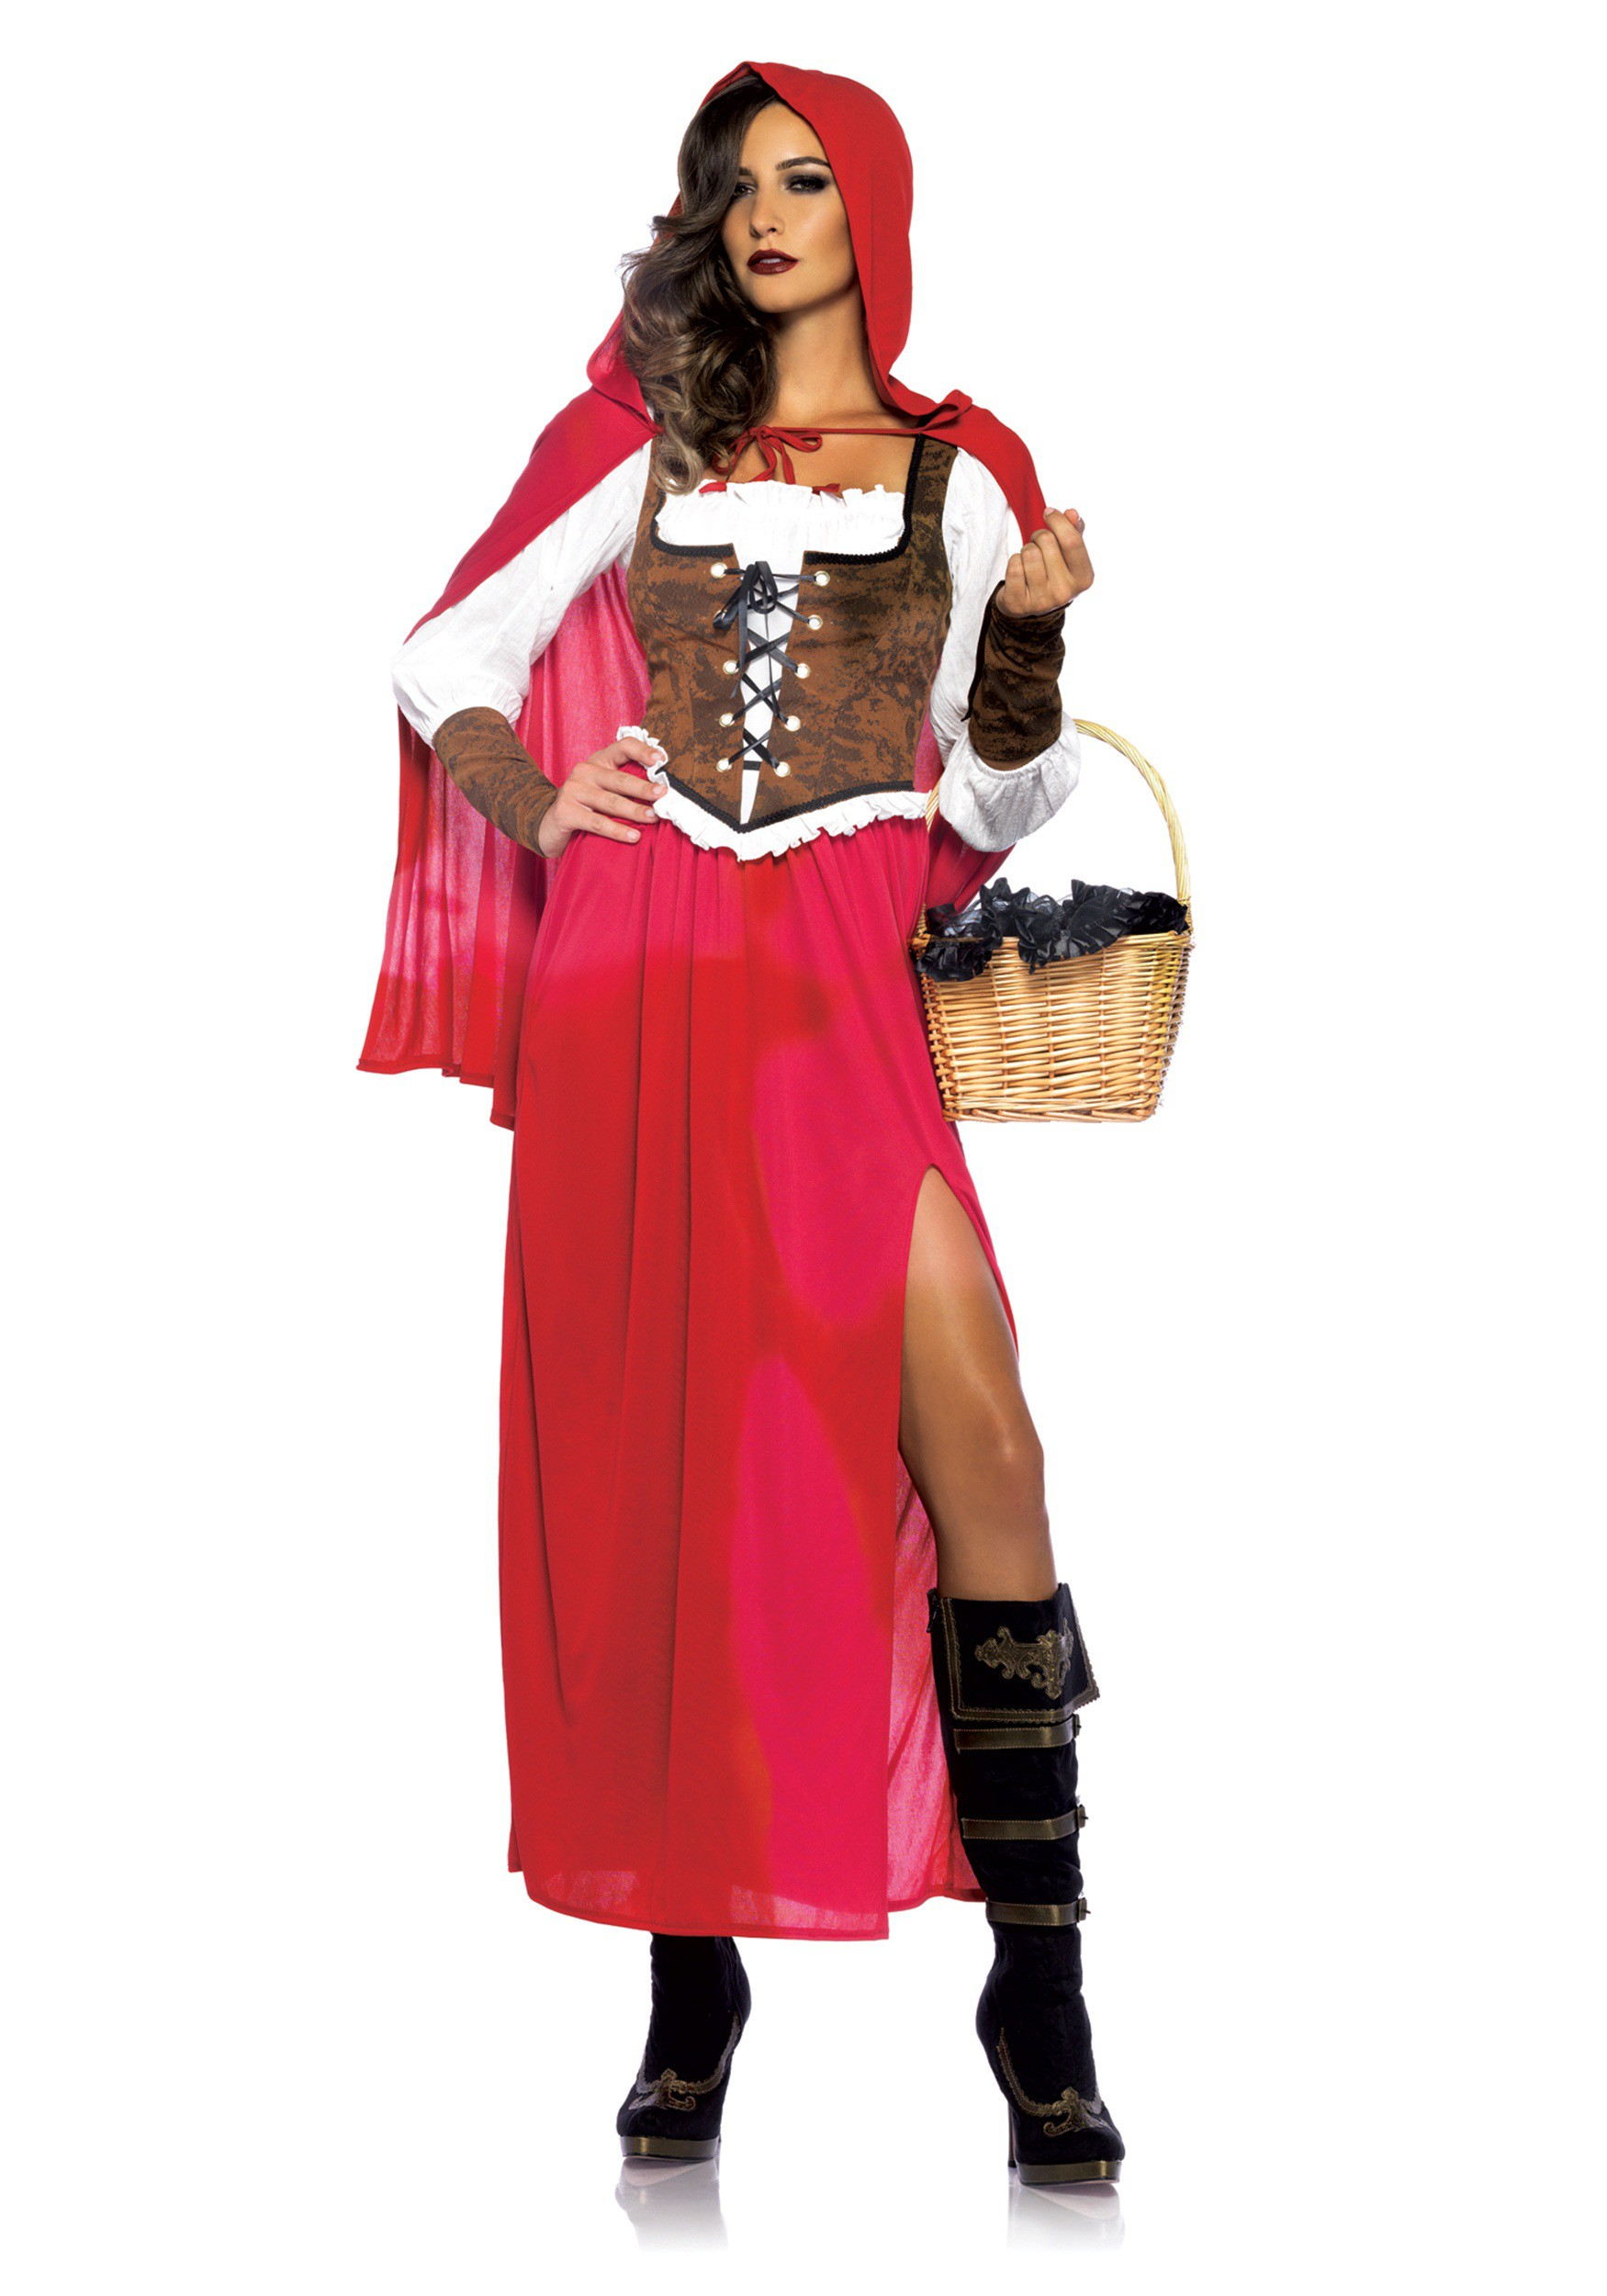 Womens Woodland Red Riding Hood Costume  sc 1 st  Halloween Costumes & Little Red Riding Hood Costumes - HalloweenCostumes.com